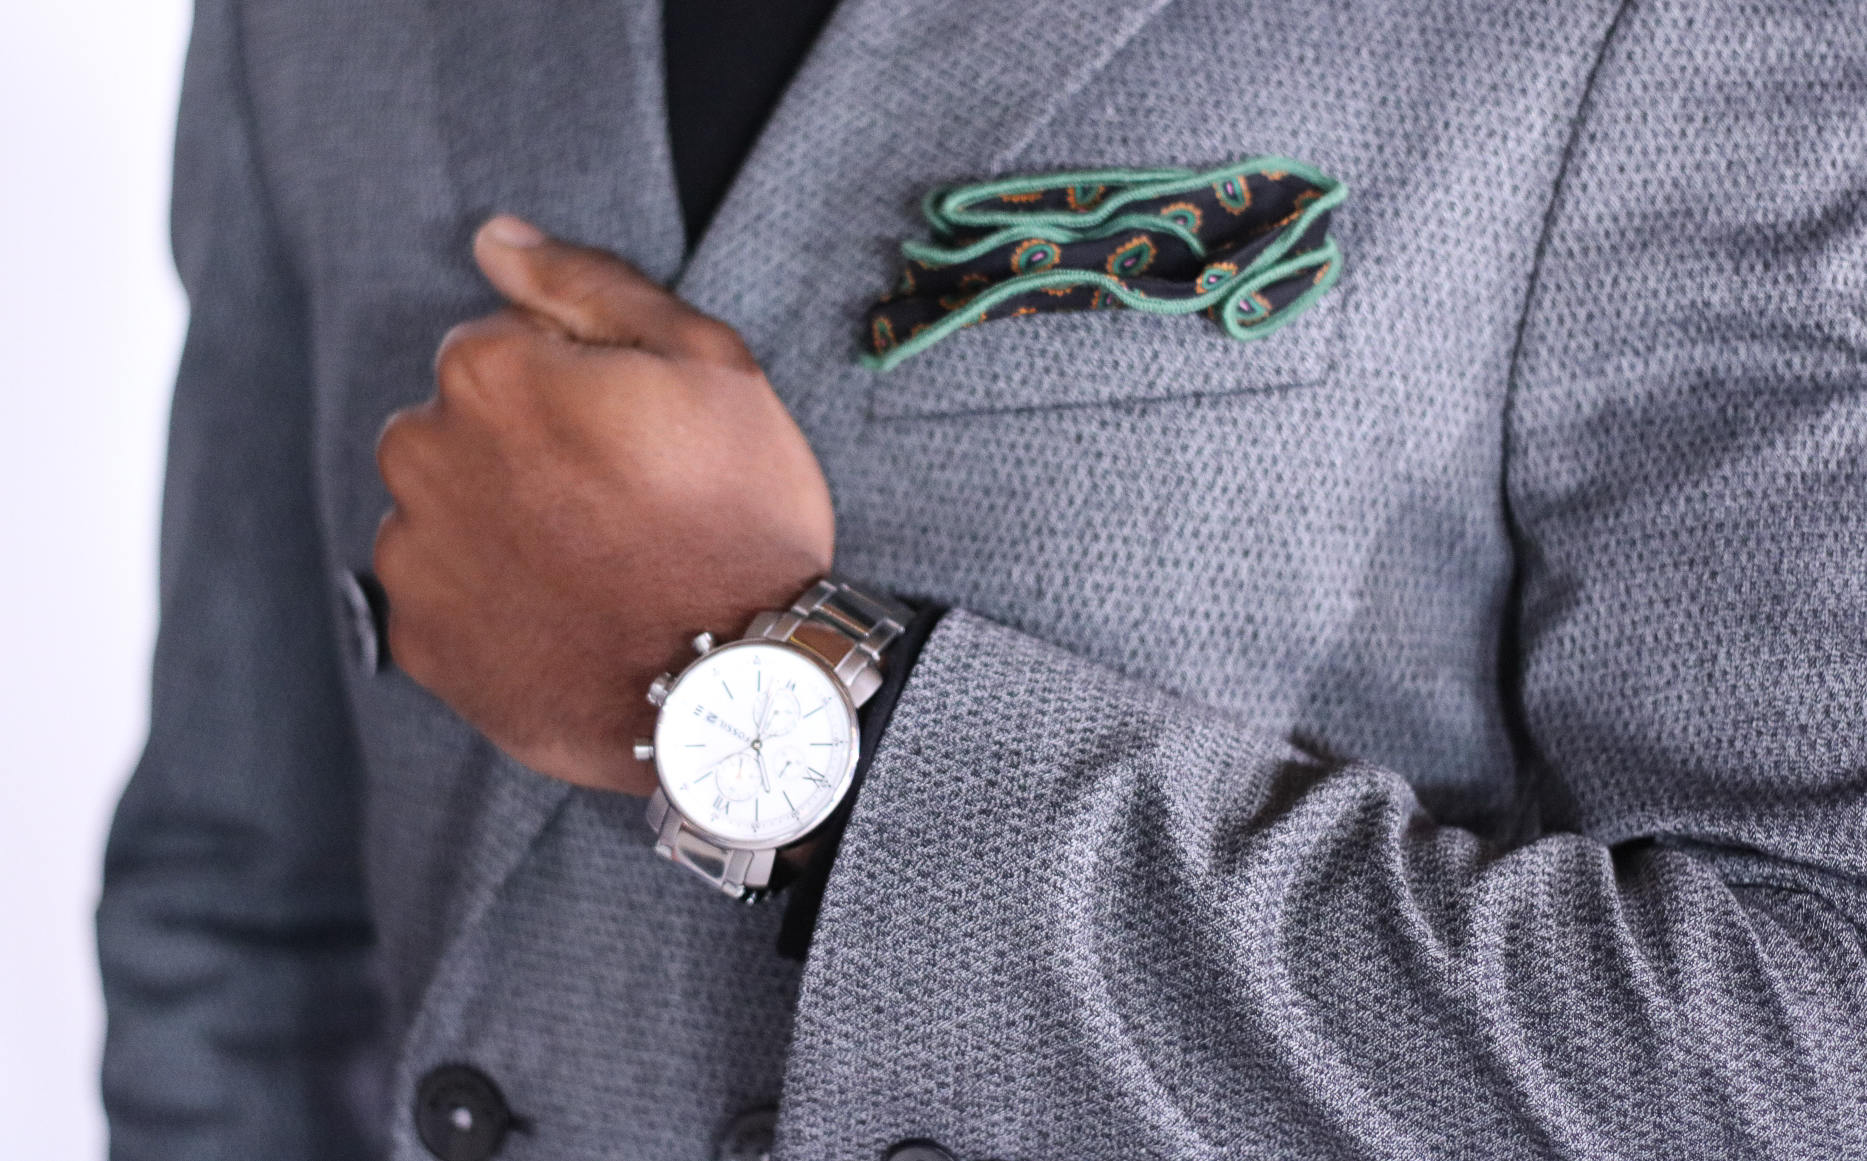 Watch and pocket square